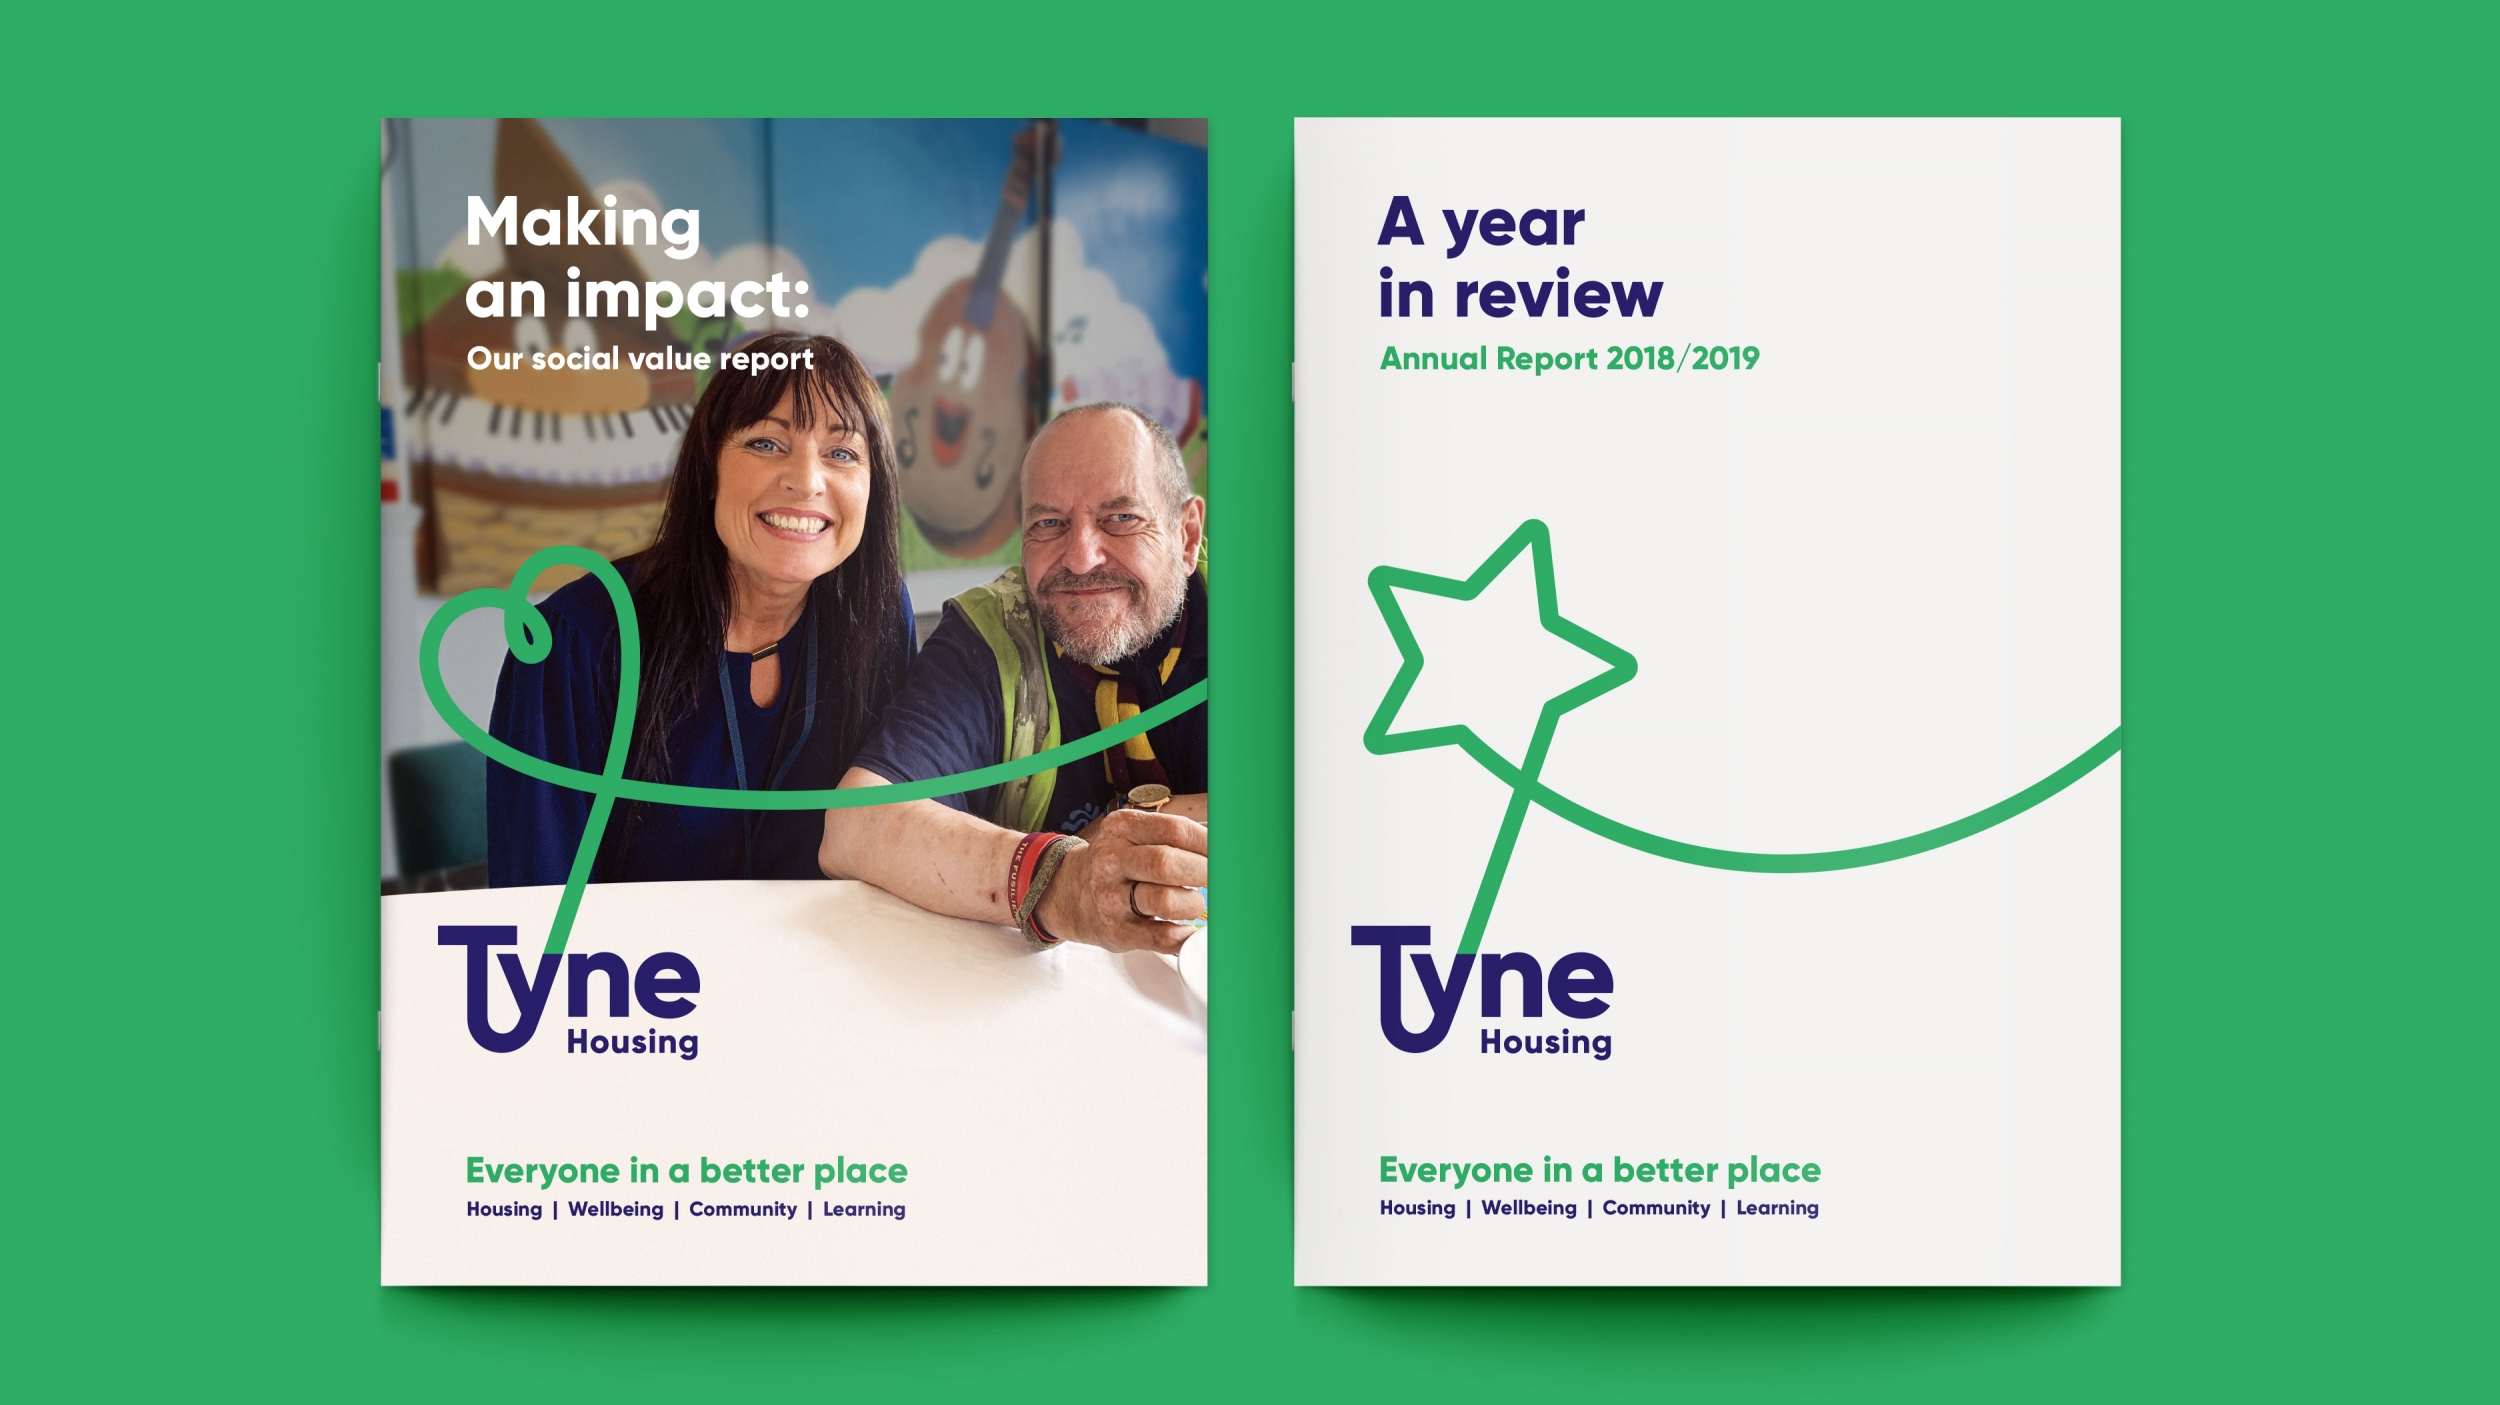 Tyne Housing association annual report and social impact report and branding by Altogether Creative.